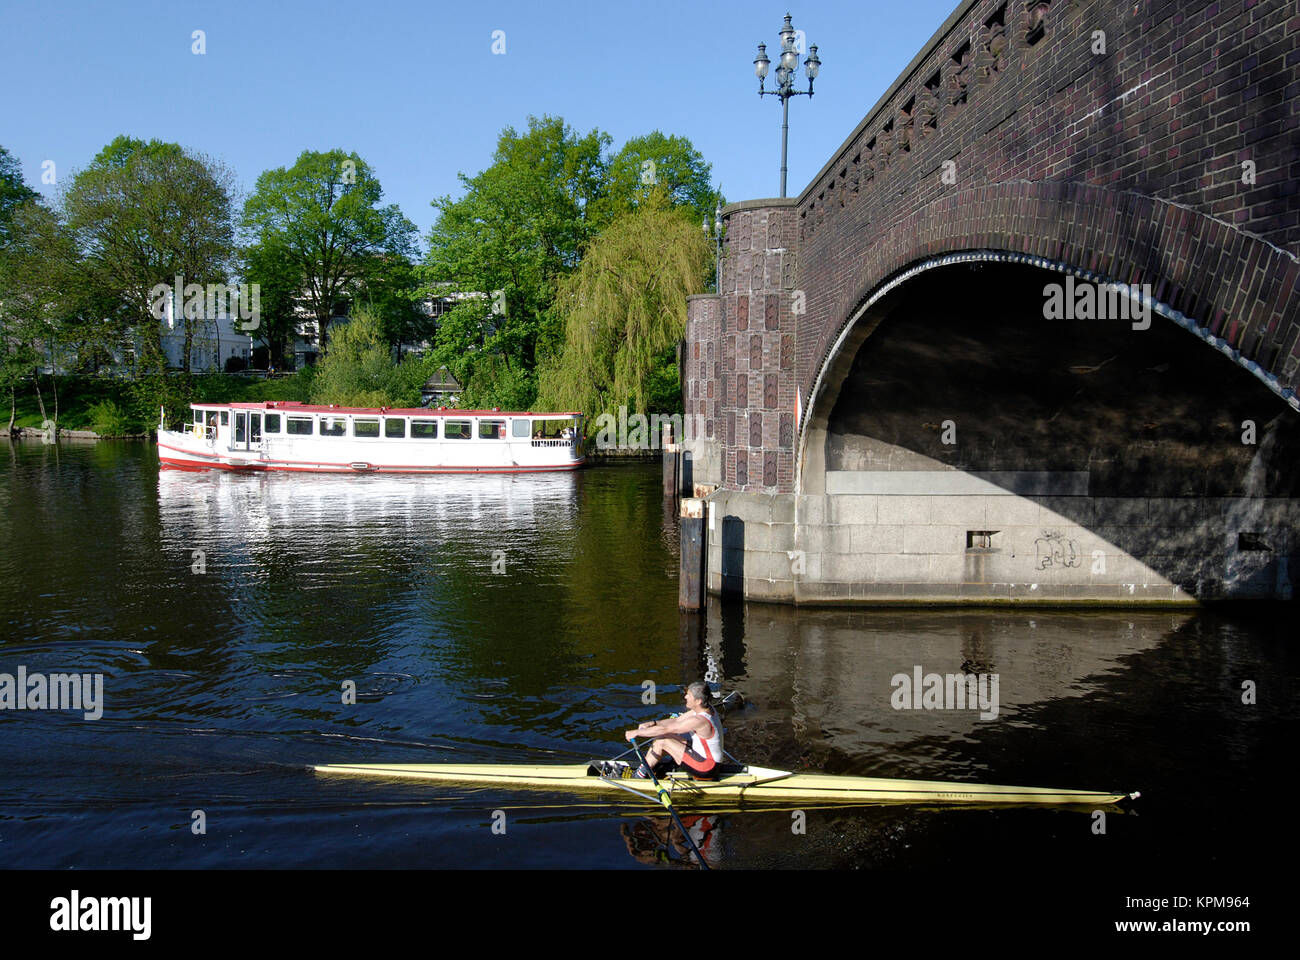 Hamburg, one of the most beautiful and most popular tourist destinations in the world. Canoeist at the Krugkoppelbrücke - Stock Image